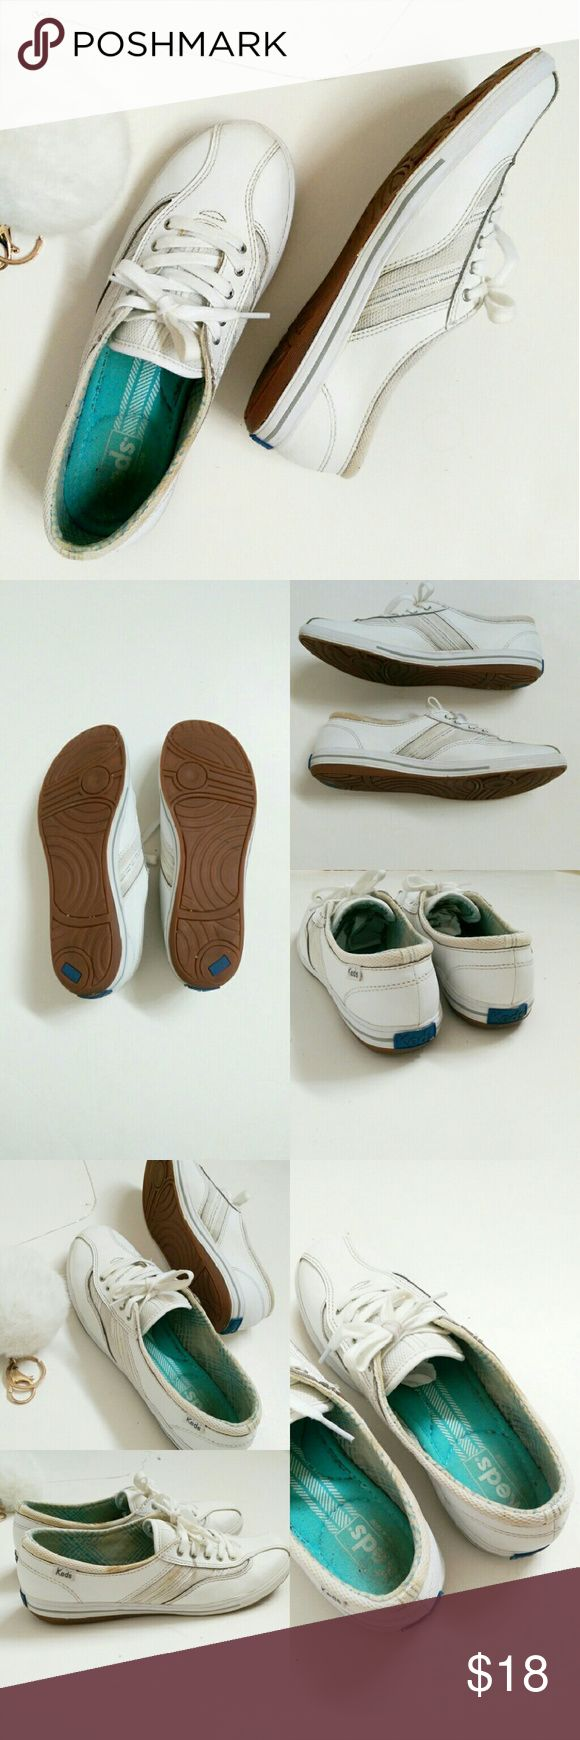 how to clean leather keds shoes